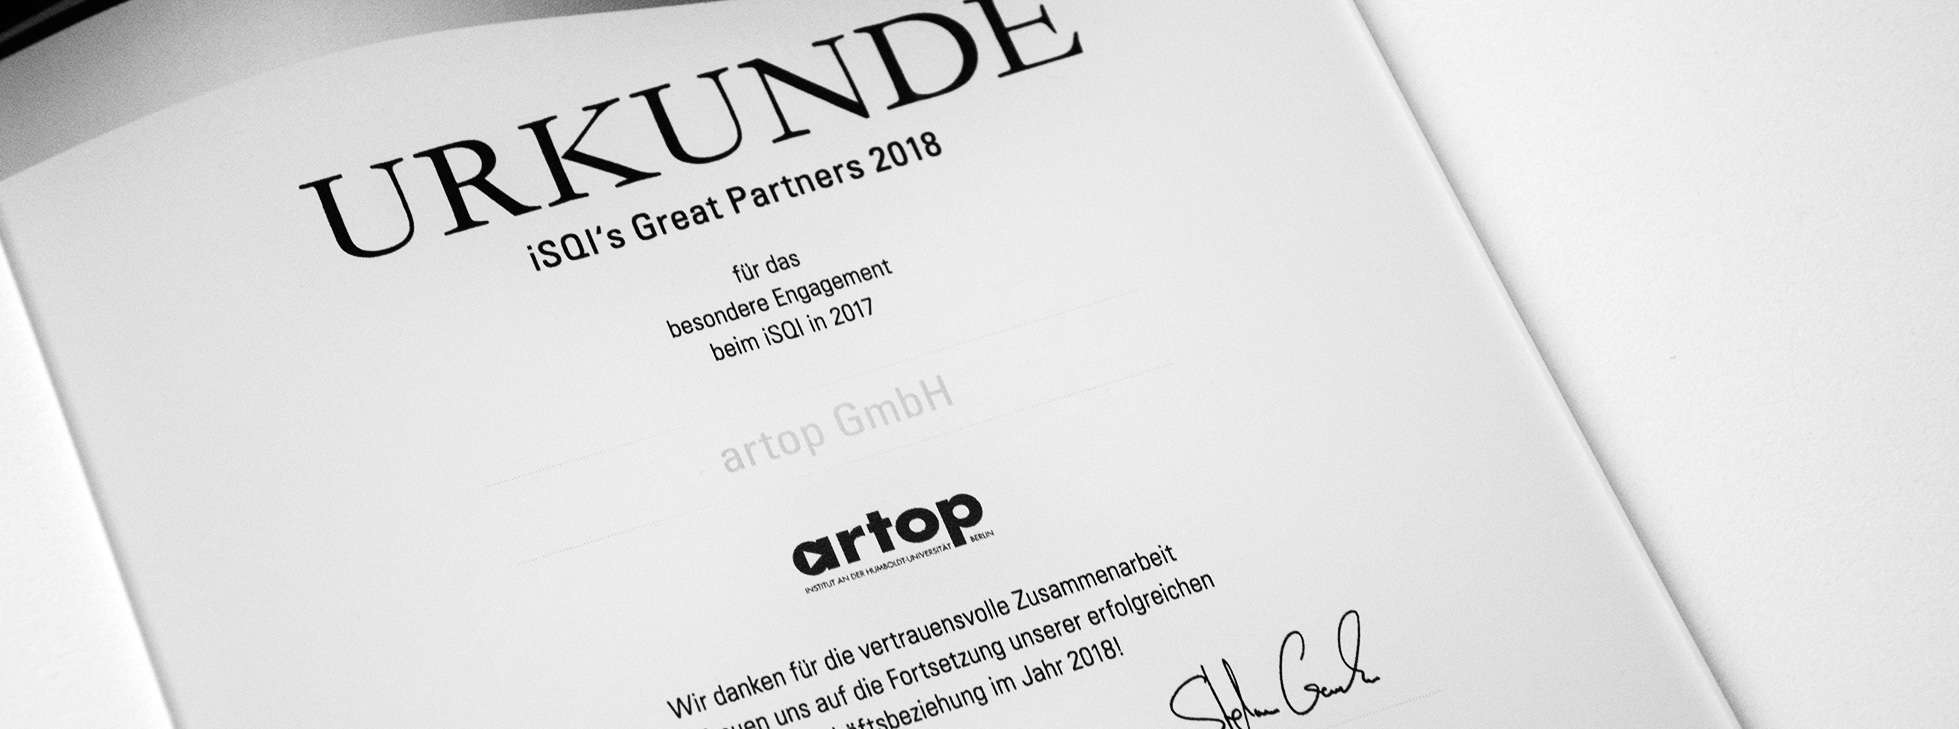 artop - Great Partner 2017